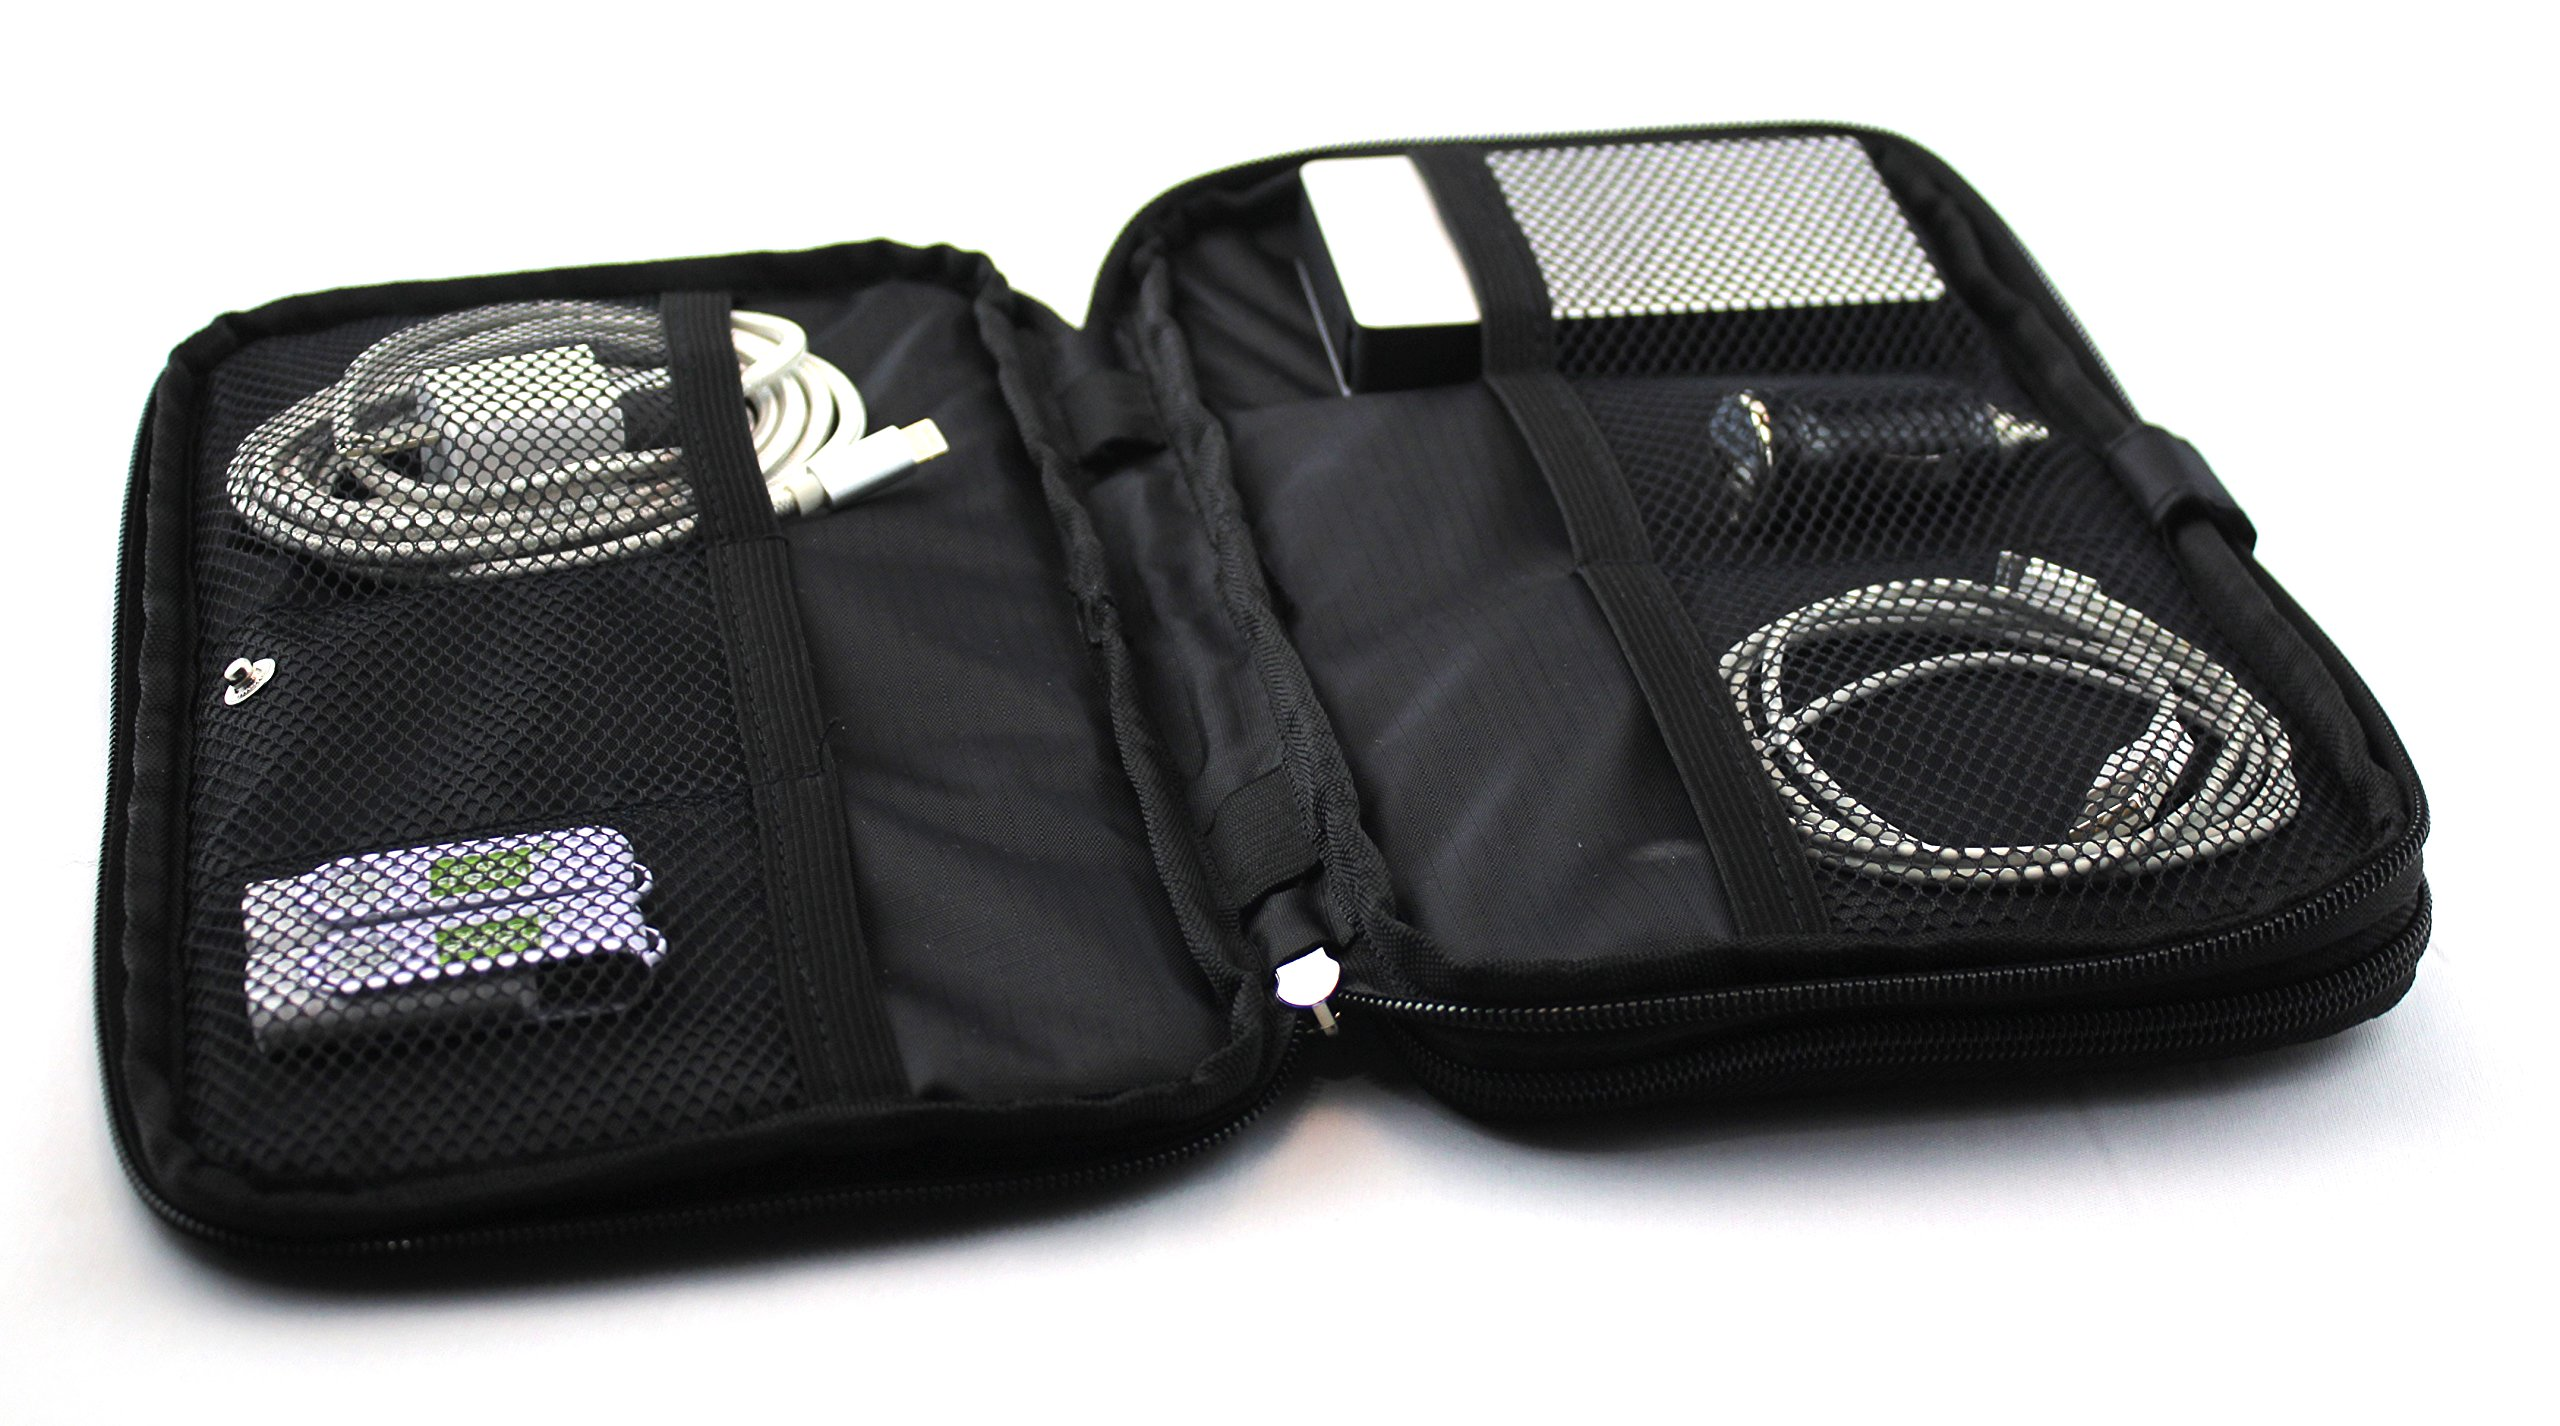 TRAVEL FUSION Electronic Travel Organizer - Padded travel bag with expandable zippered compartments and mesh dividers.